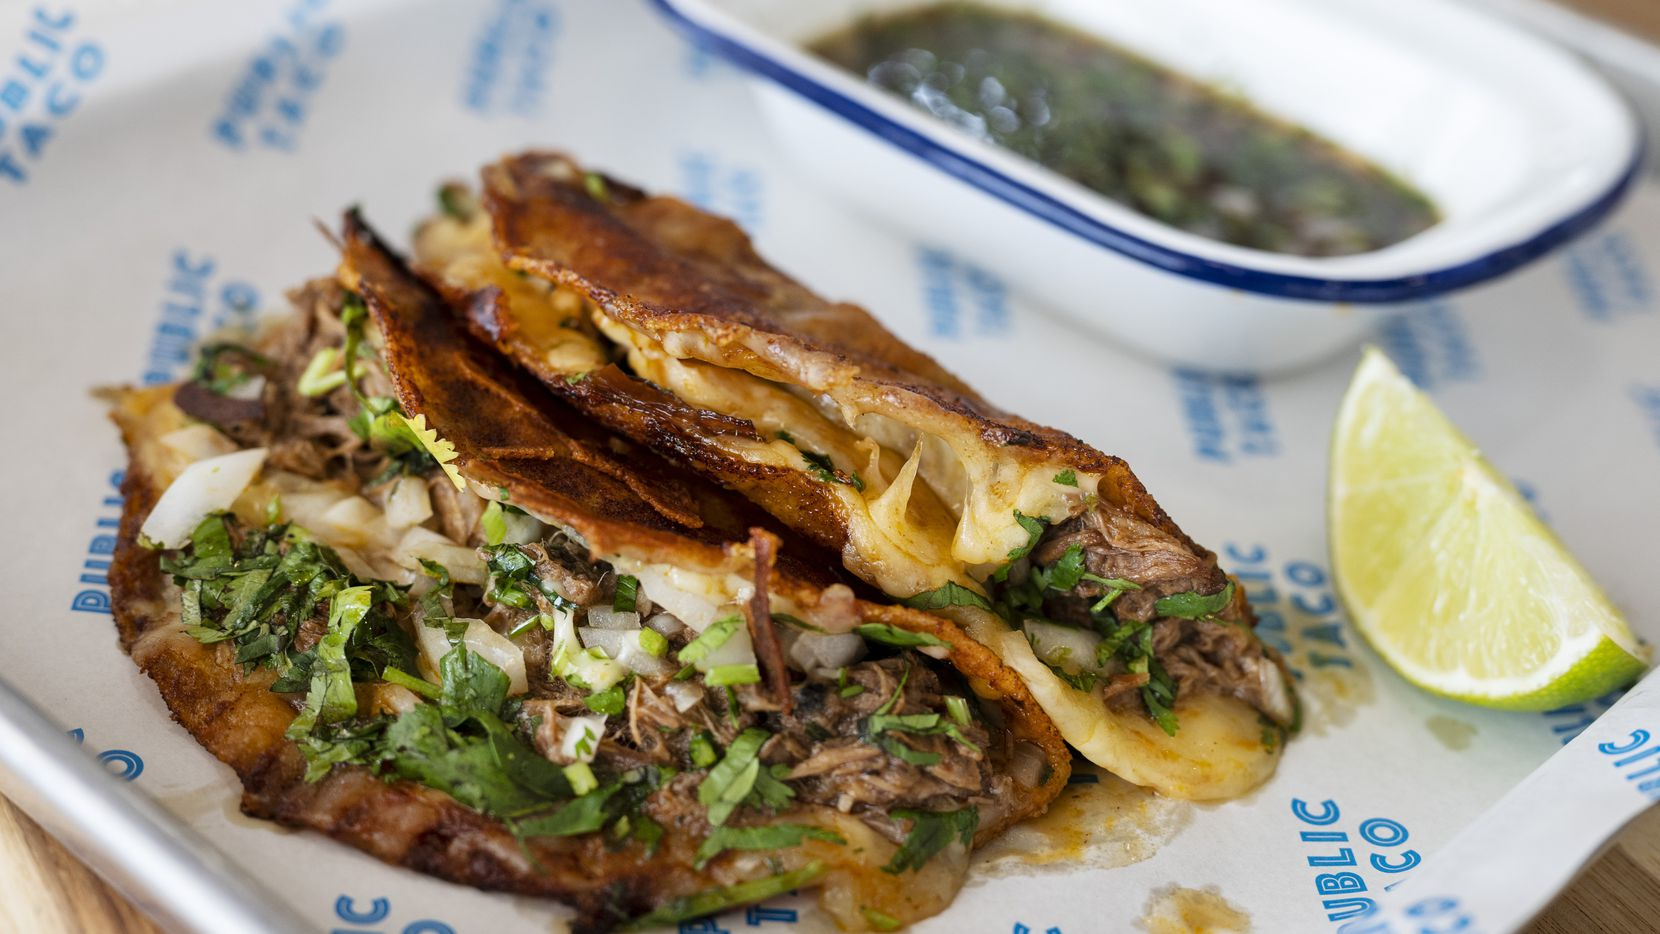 One of Public Taco's more popular items is its crispy birria tacos: grilled crispy tacos with barbacoa, served with a bowl of consommé. The restaurant has closed twice since early 2020. In July 2021, it opened for a third time at Preston-Royal in Dallas.